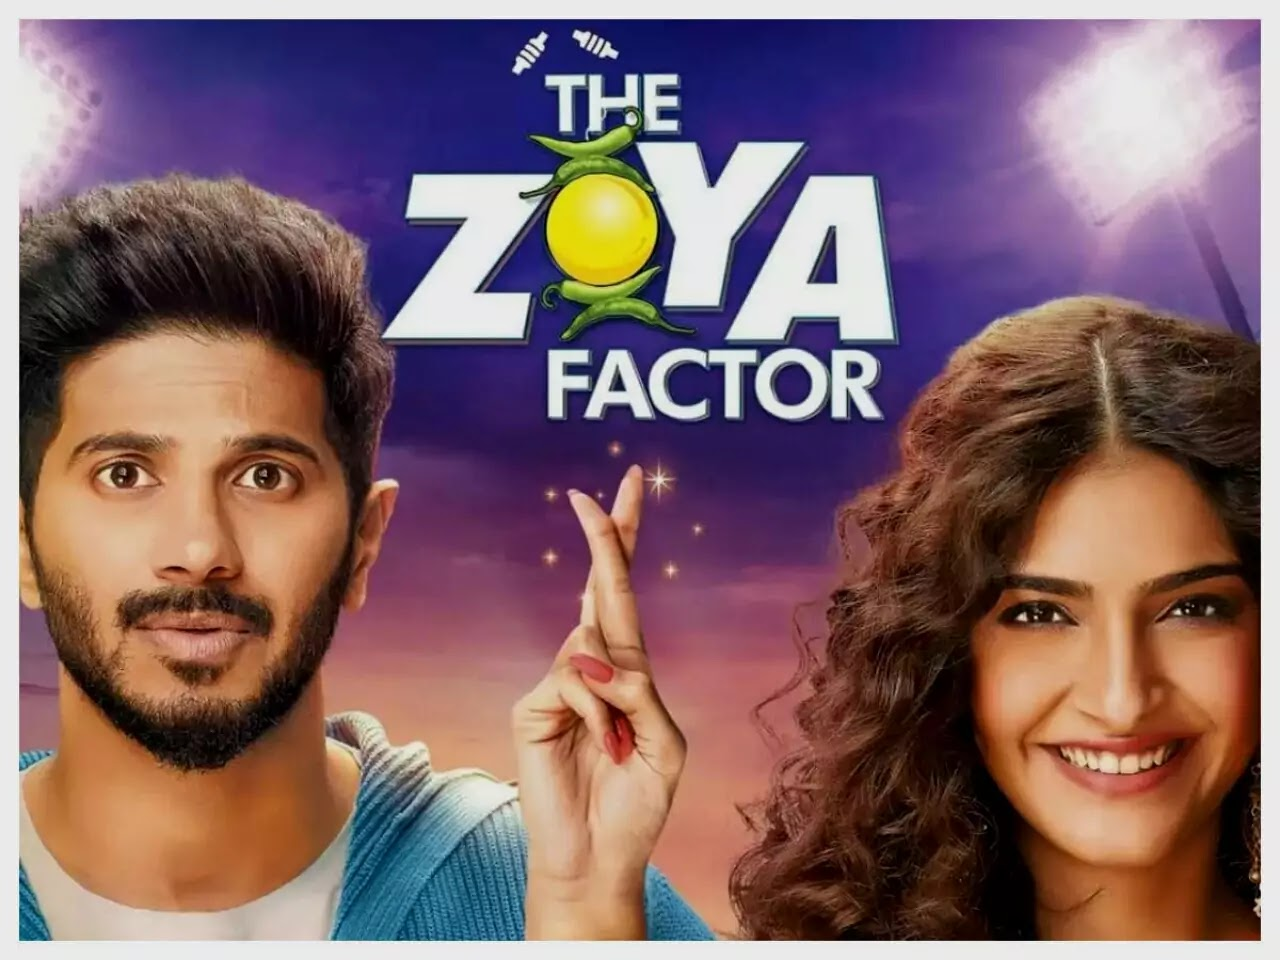 directed by Abhishek Sharma the zoya factor,zoya factor movie,the zoya factor review,the zoya factor movie review,zoya factor,the zoya factor trailer,zoya factor trailer,the zoya factor public review,the luck factor,abhishek sharma director zoya factor,the zoya factor movie,zoya factor movie review,the zoya factor trailer review,zoya factor review,the zoya factor full movie,the zoya factor songsBox office: est. ₹6.91 crore (worldwide) Based on: The Zoya Factor; by Anuja Chauhan Budget: ₹30crore Release date: September 19, 2019the zoya factor,zoya factor,zoya factor movie,zoya factor trailer,the zoya factor songs,the zoya factor review,the zoya factor trailer,the luck factor,abhishek sharma director zoya factor,the zoya factor movie review,the zoya factor public review,the zoya factor trailer launch,the zoya factor official trailer,zoya factor review,the zoya factor trailer review,the zoya factor trailer reactionThe Zoya Factor is a 2019 Indian Urdu Hindi language romantic comedy film directed by Abhishek Sharma and produced by Fox Star Studios, Pooja Shetty and Aarrti Shetty. Starring Sonam Kapoor Ahuja and Dulquer Salmaan. Produced by: Fox Star Studios; Pooja Shetty; Aarrti Shetty Narrated by: Shah Rukh Khan Production company: Fox Star Studios; Ad-Labs Films Limited Music by: Songs: Shankar–Ehsaan–Loy; Score: Indrajit Sharma; Parikshit Sharma  The Zoya Factor Story: Conceived around the same time that India won the 1983 cricket World Cup, Zoya is considered by her family to be a four leaf clover with regards to winning matches, though crevasse cricket. In any case, when the Indian cricket the board need to sign her on as a fortunate mascot for the present group, Zoya ends up in a fix.   The Zoya Factor Survey: Zoya (Sonam Kapoor), a lesser duplicate essayist in a promotion organization is sent on an advertisement photograph shoot with the Indian cricket crew. At the point when an adoration struck Zoya meets Nikhil Khoda (Dulquer Salmaan), chief of the Indian crick